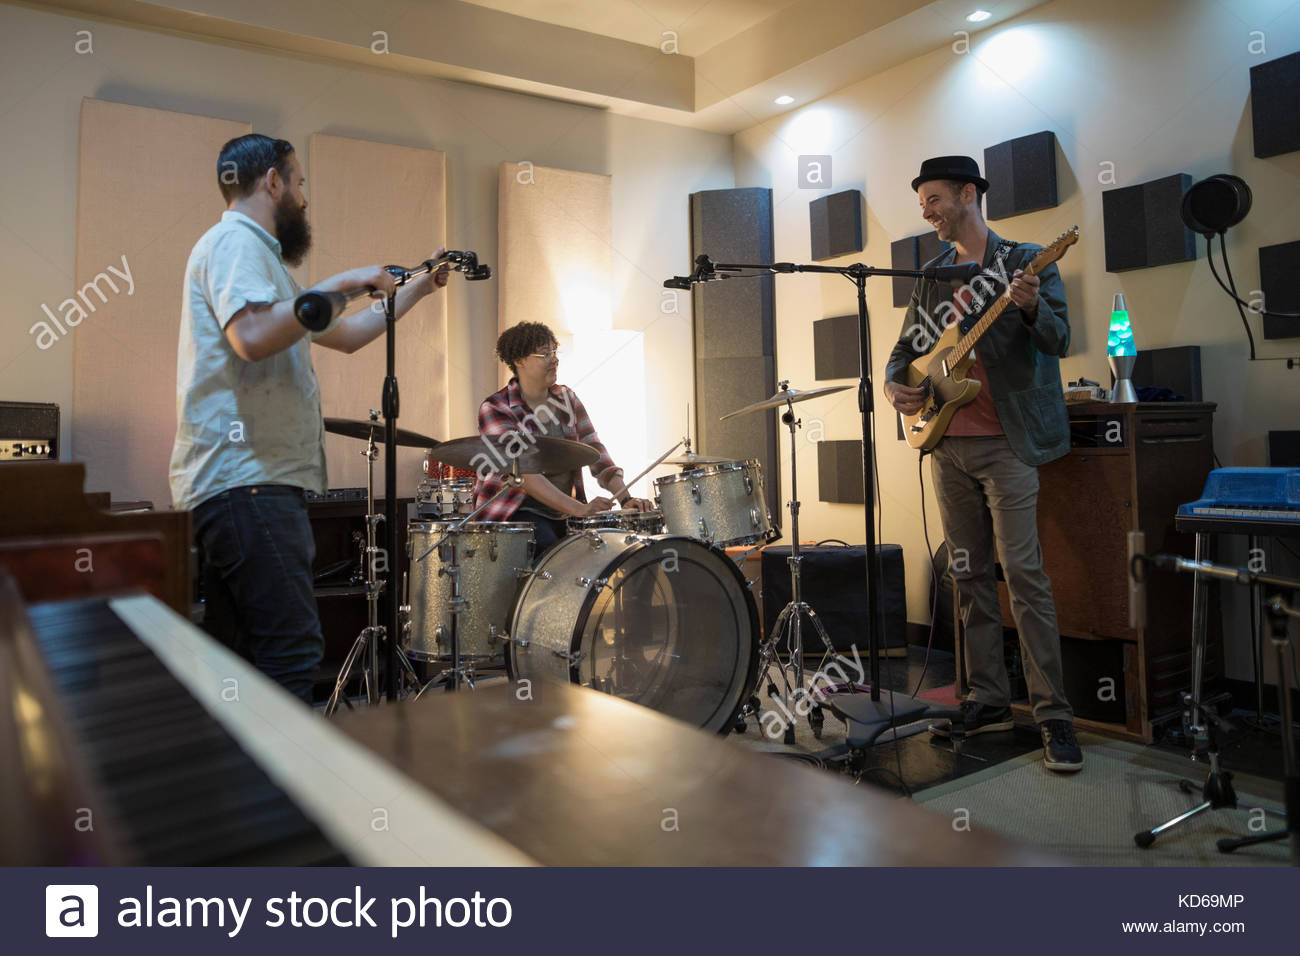 Musicians playing in recording studio - Stock Image